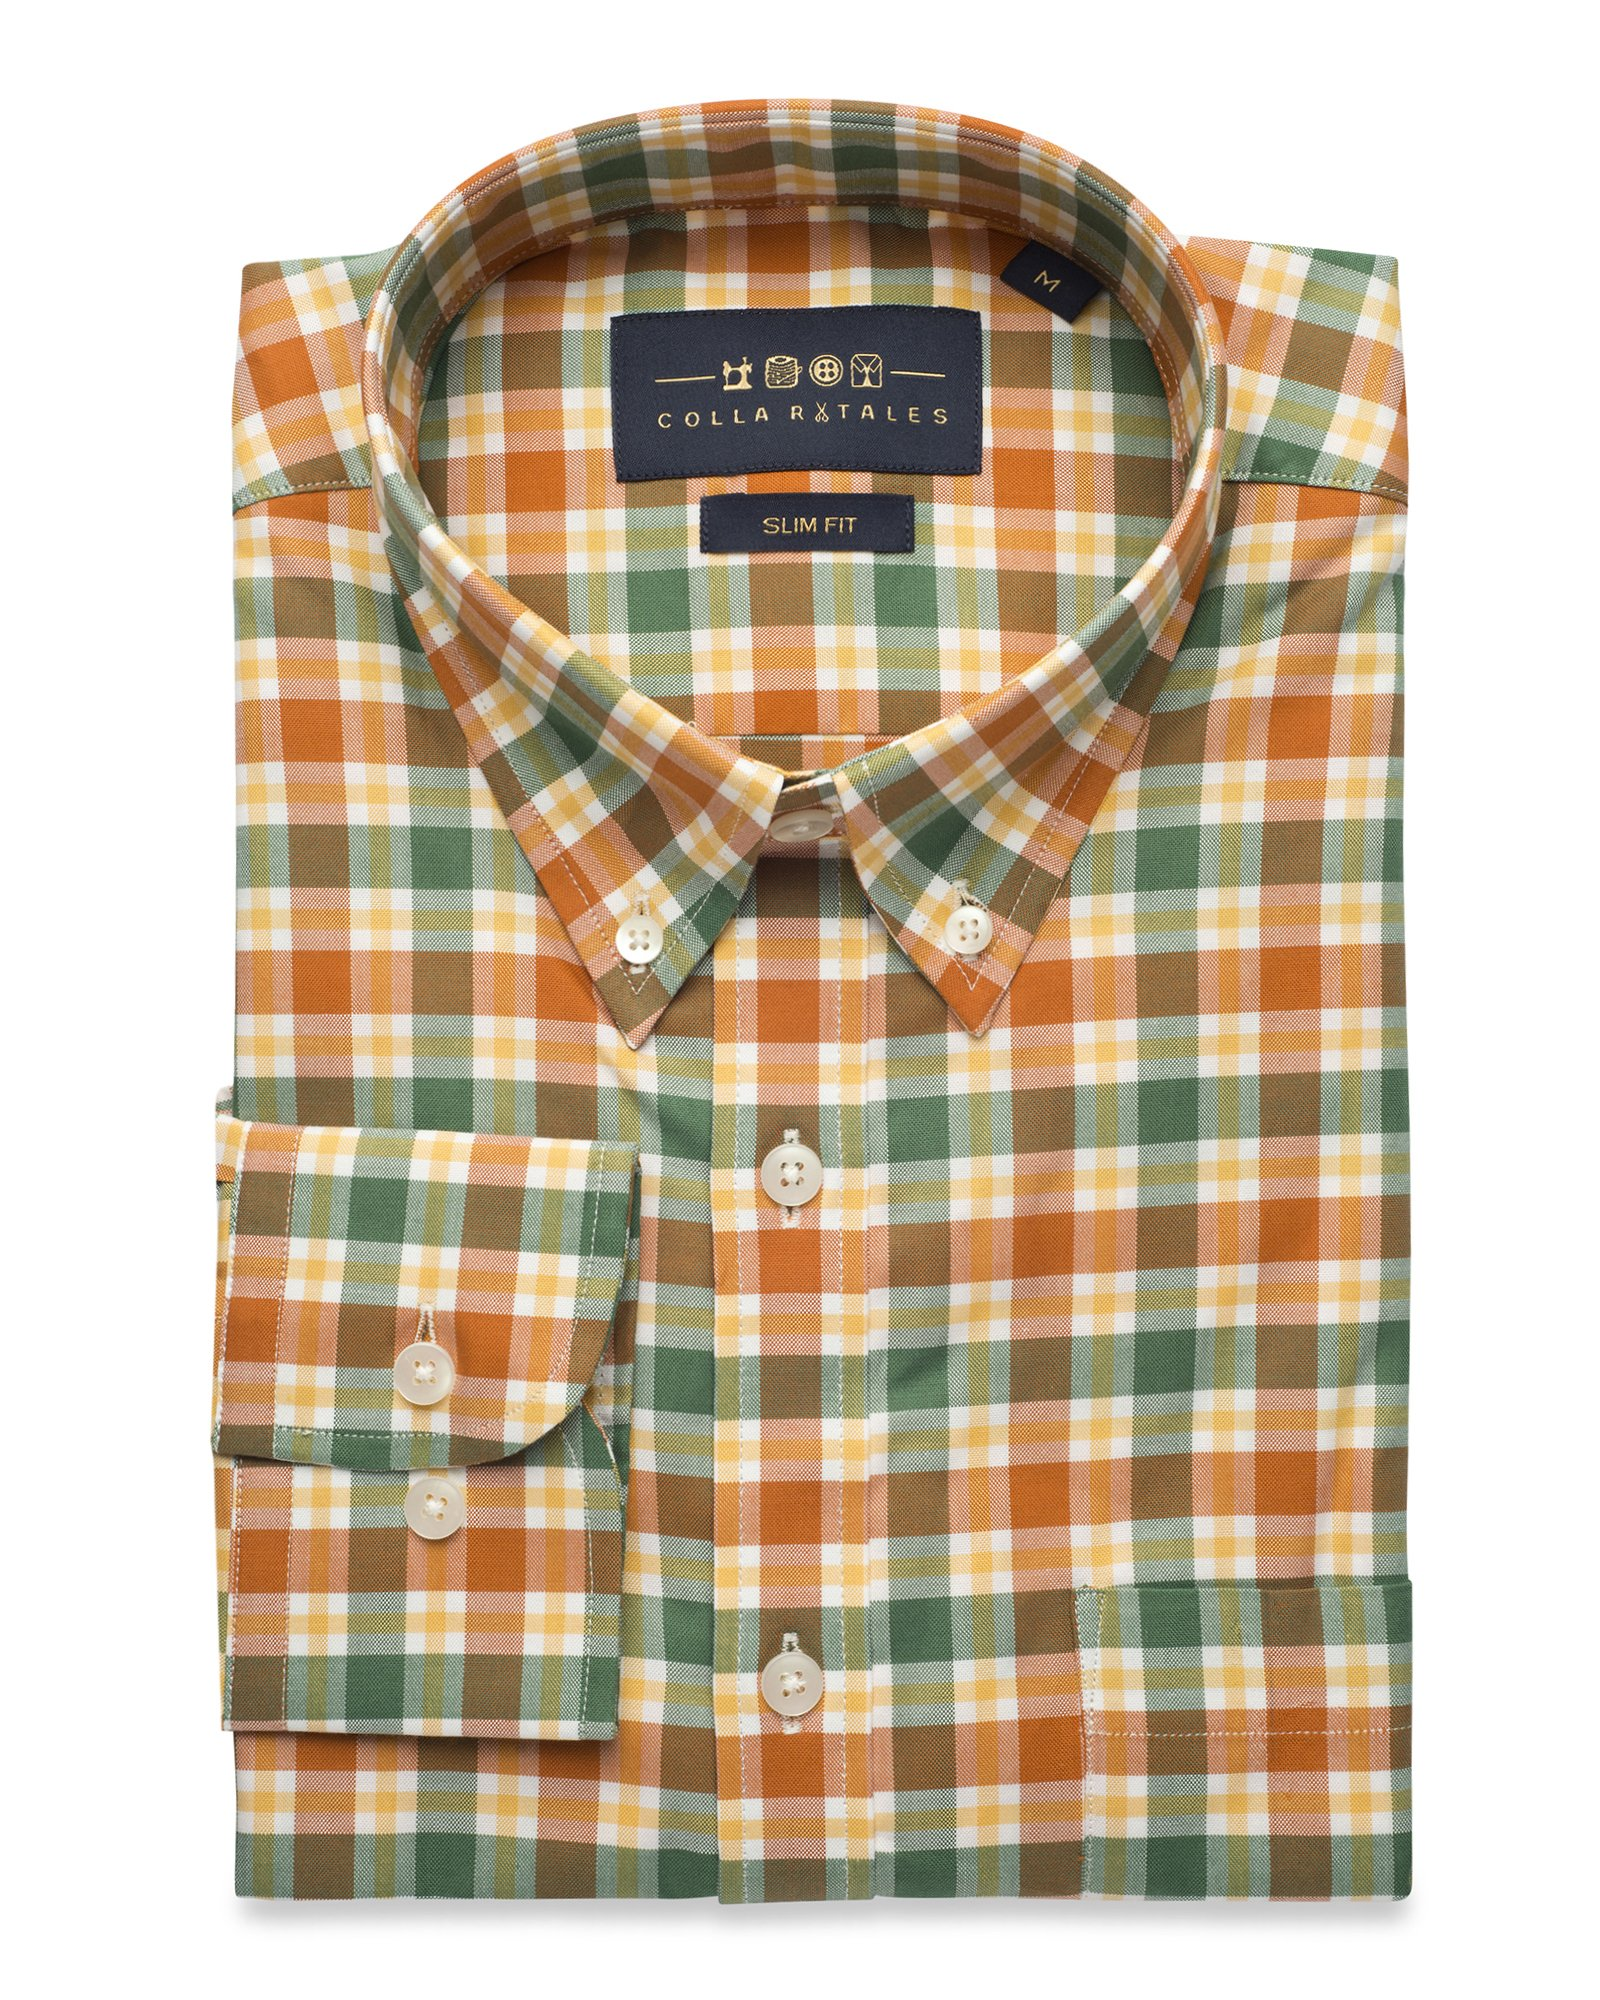 Collar Tales Men's Checkered Superfine Cotton Slim Fit Narrow Collar Button Down Long Sleeve Multi-Check Dress Shirt with Pocket- Green, Orange and White